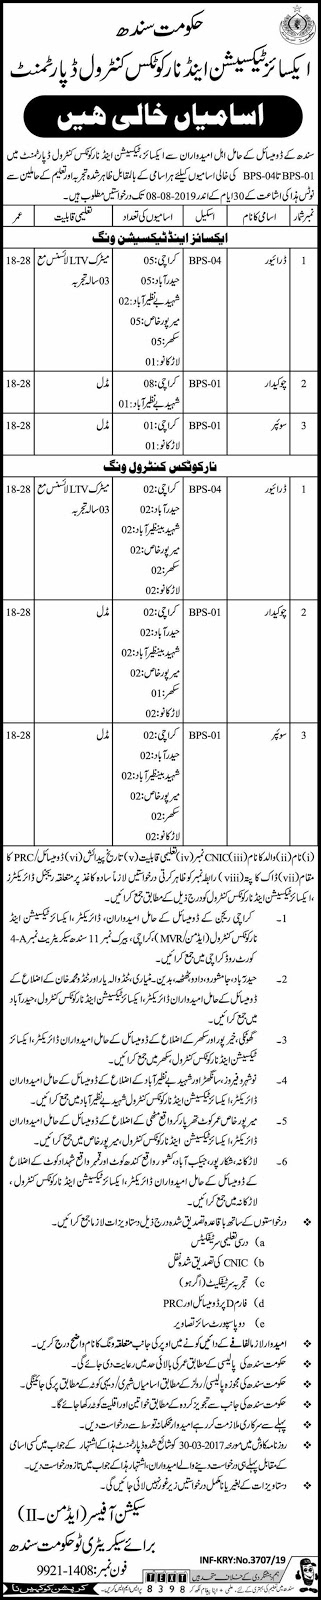 Jobs in Excise Taxation and Narcotics Contrl Department 11 July 2019